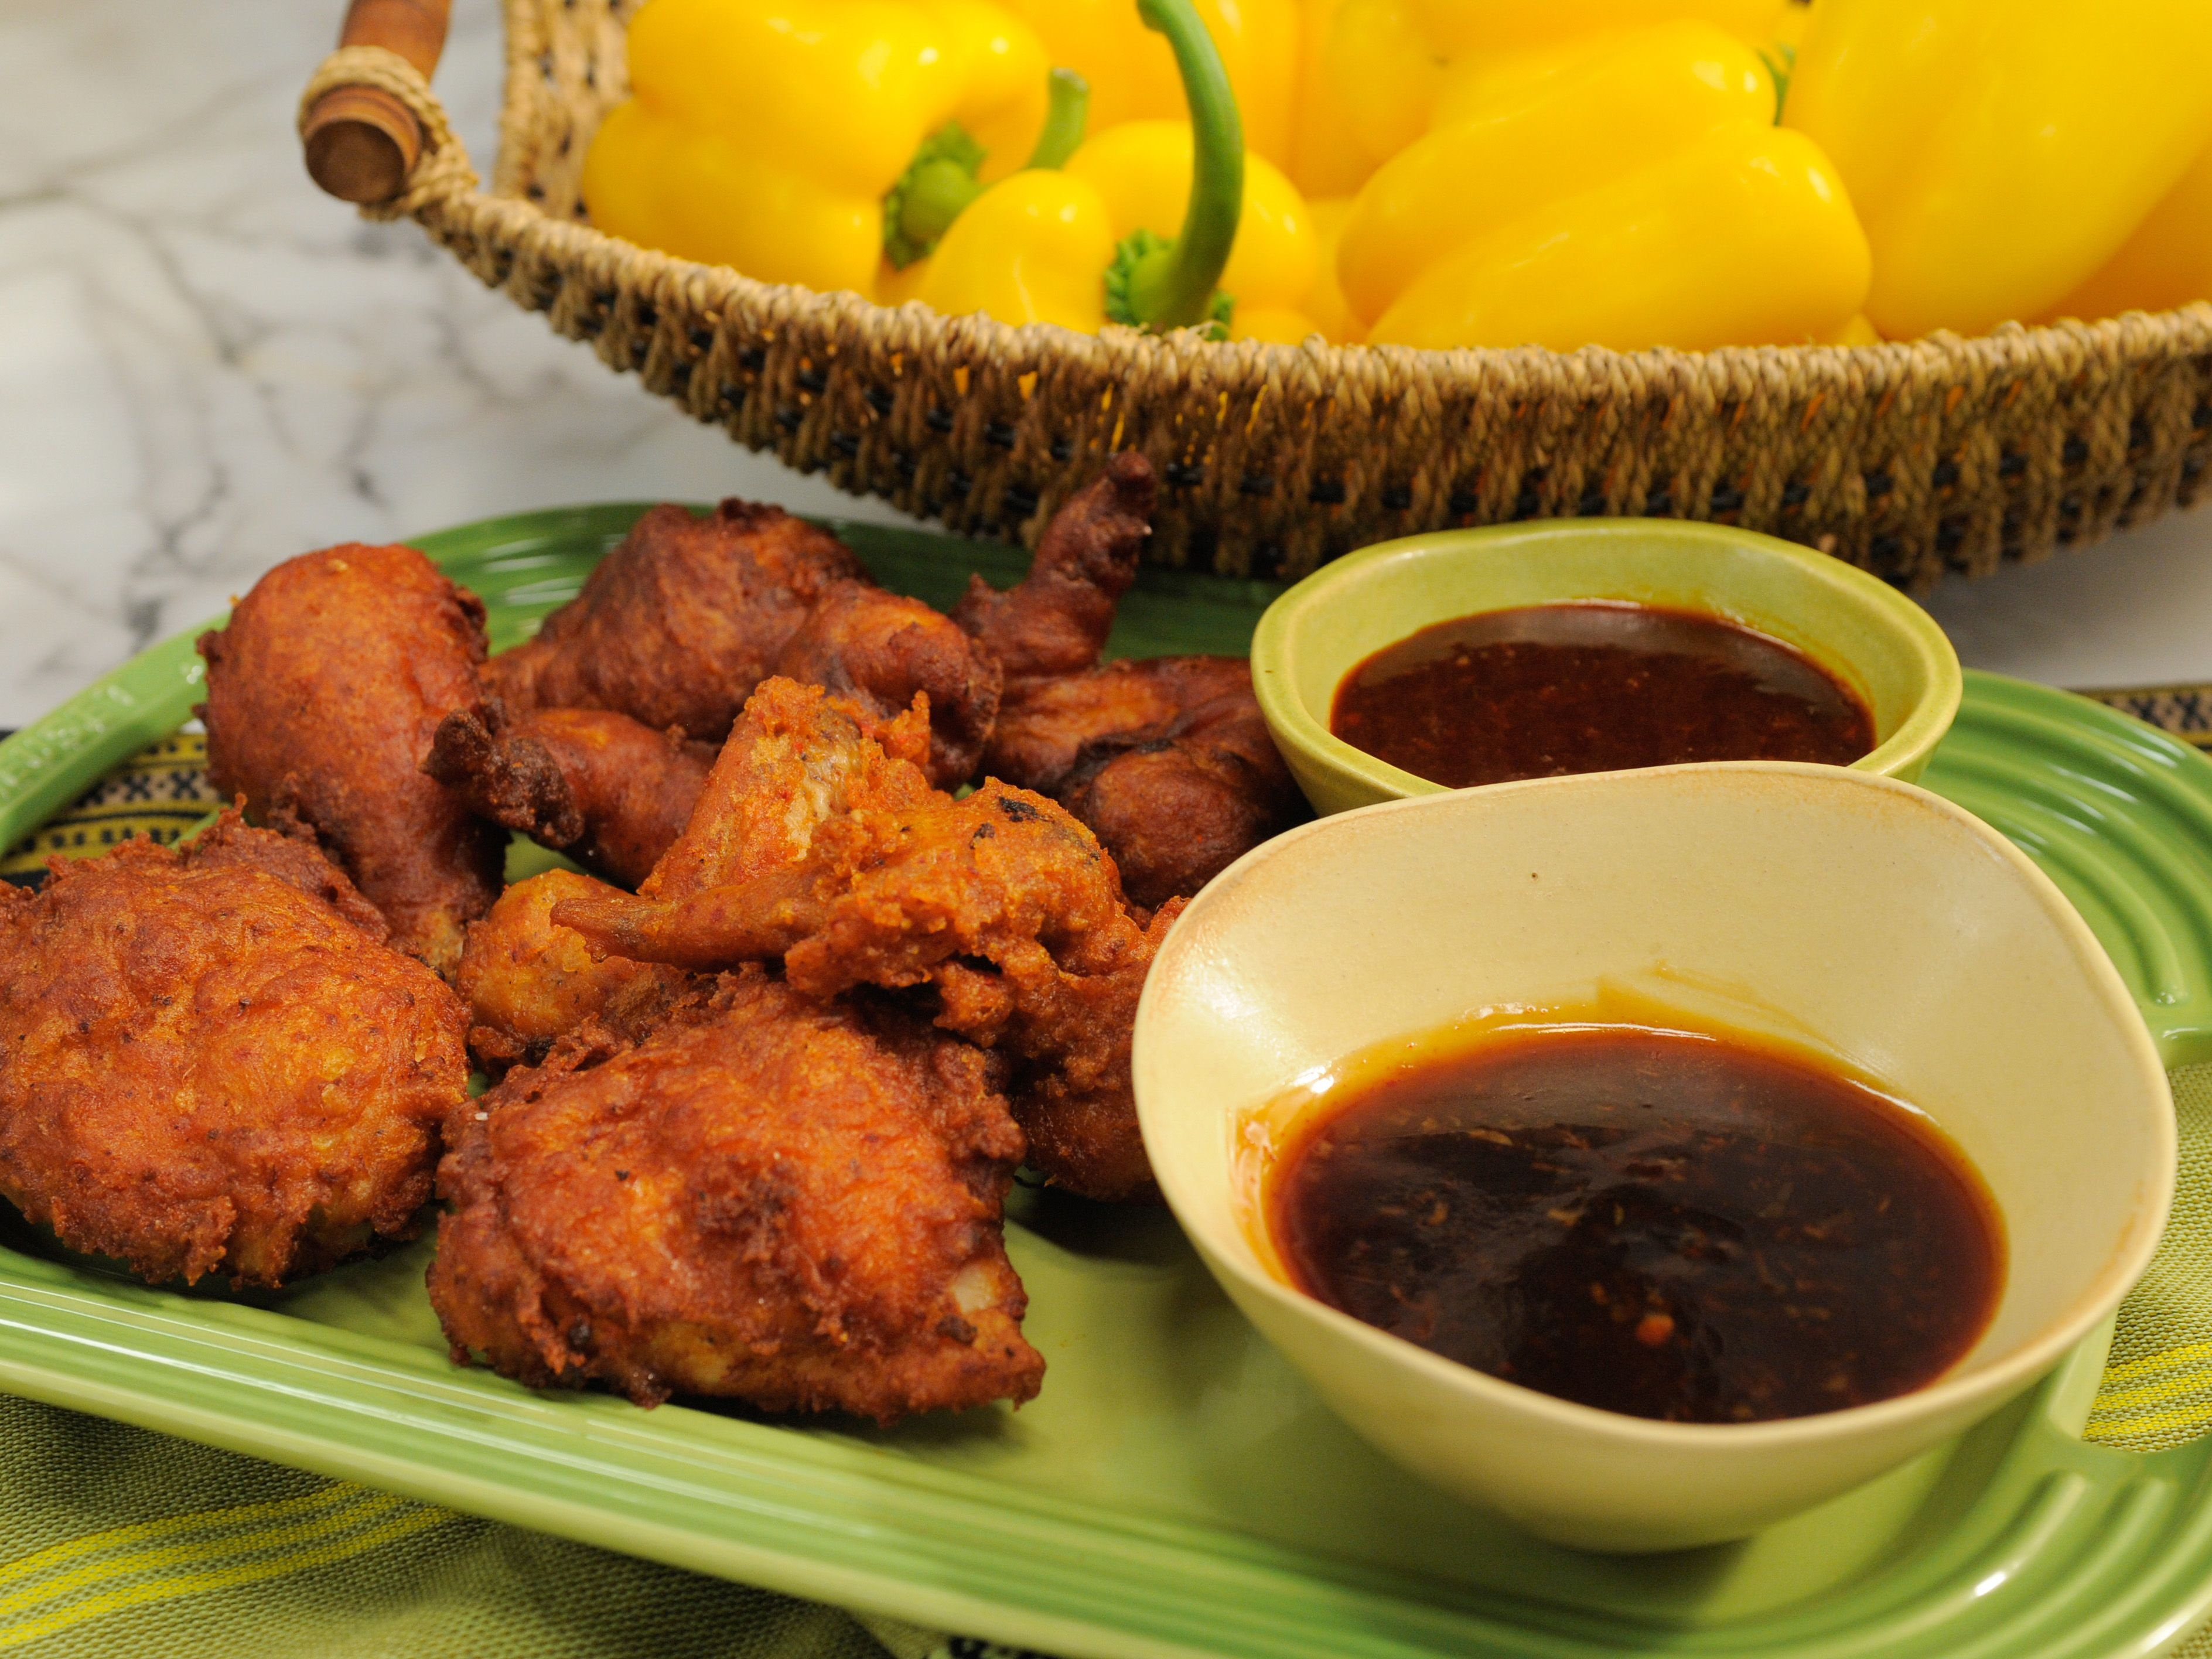 Ultimate korean fried chicken recipe fried chicken recipes make this you will not be disappointed if you double it can become uber salty chicken recipes food networkfried forumfinder Images